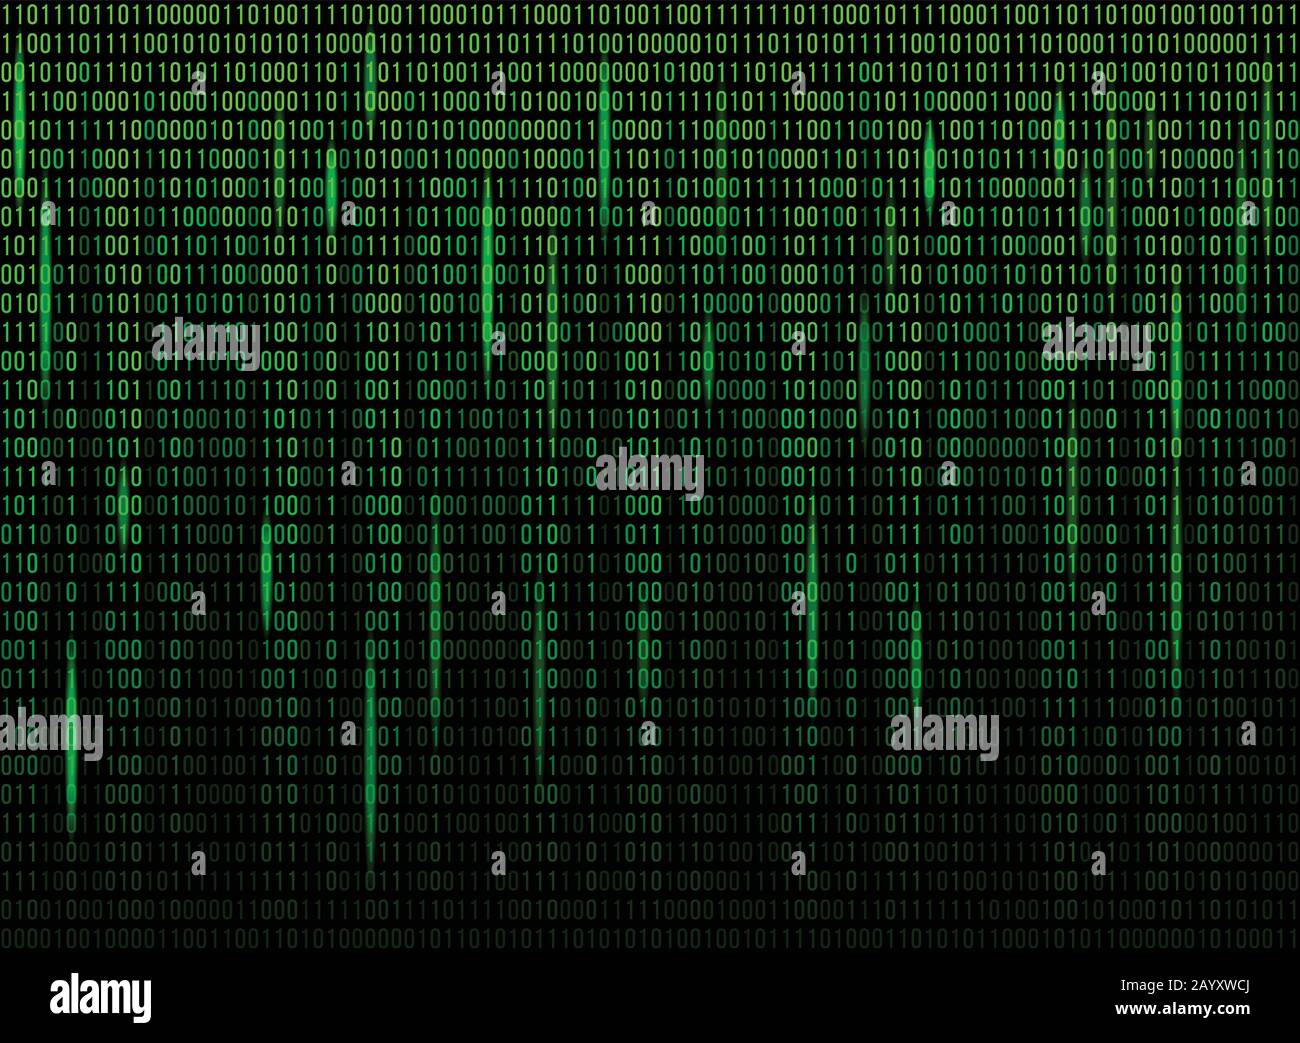 Computer screen binary data code. Numerical continuous code in green color, abstract web data in binary code. Vector illustration Stock Vector